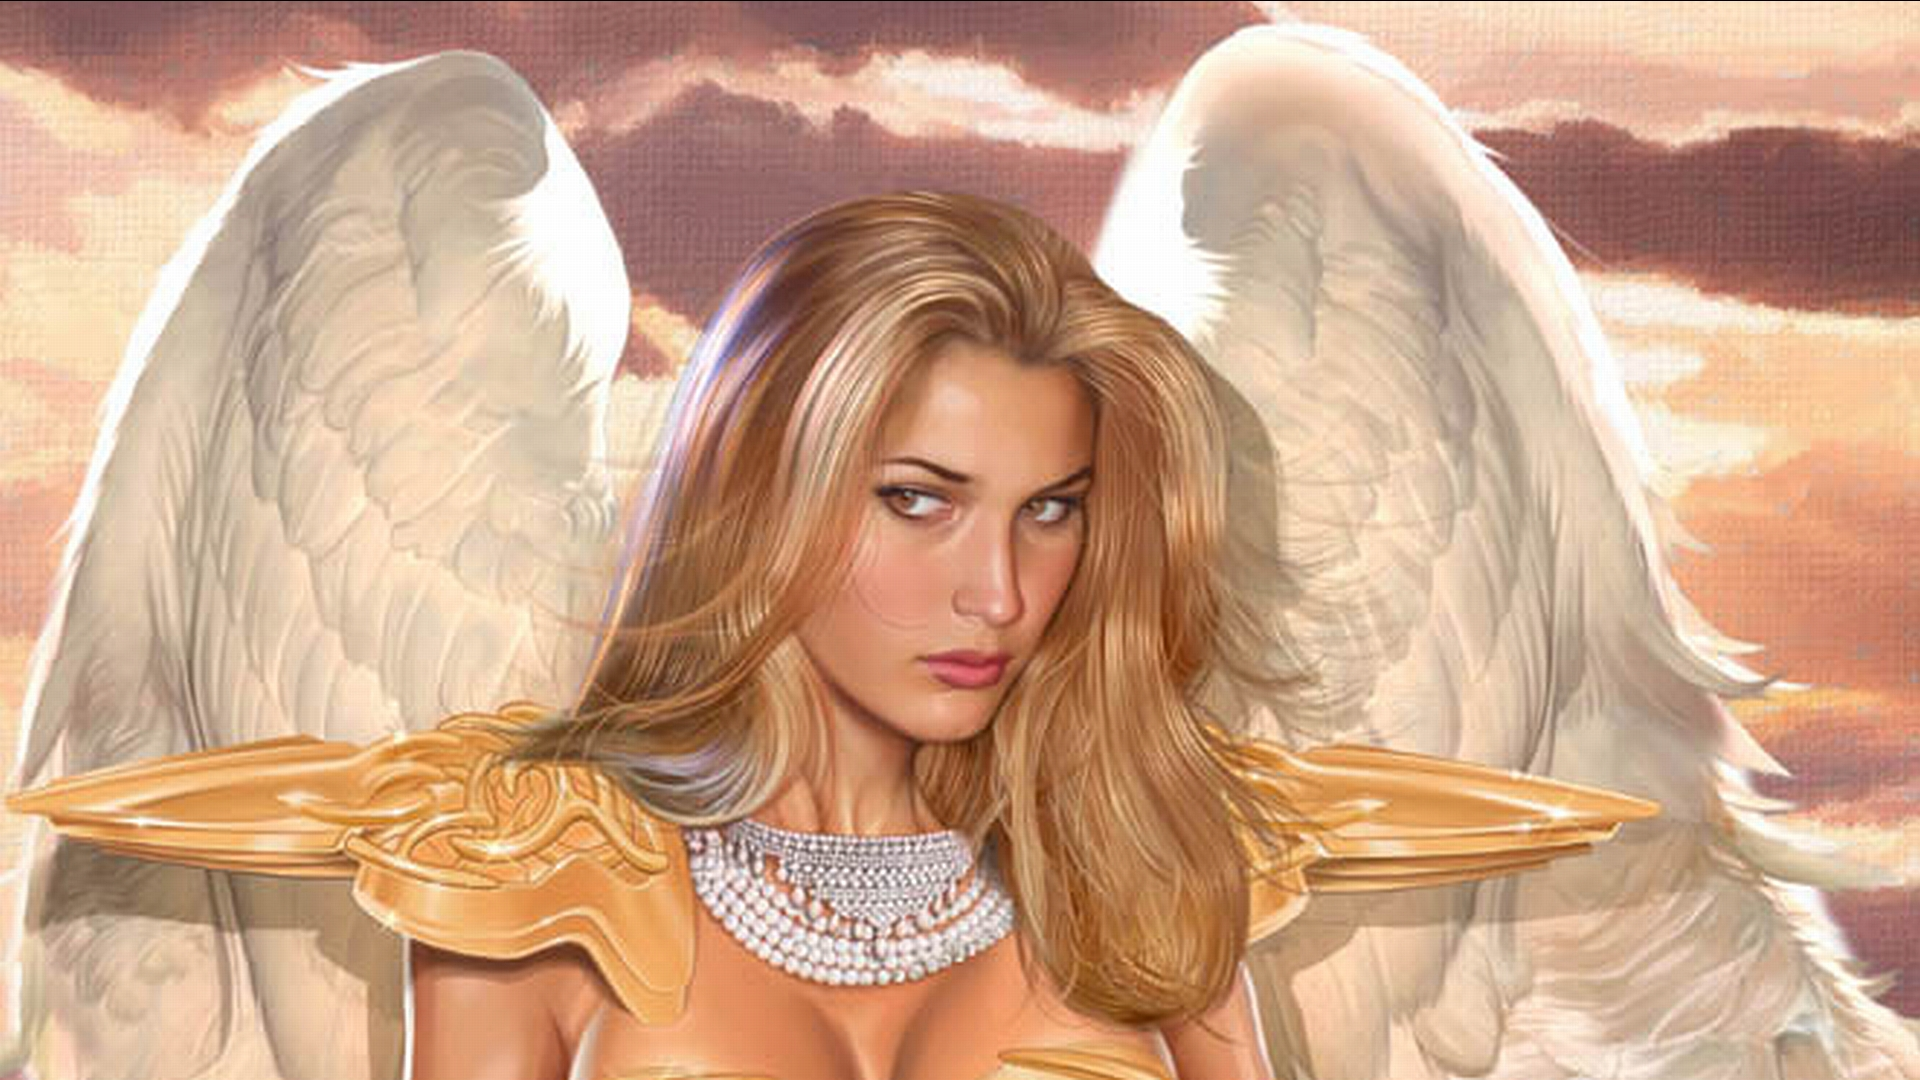 Angel Full Hd Wallpaper And Background Image 1920x1080